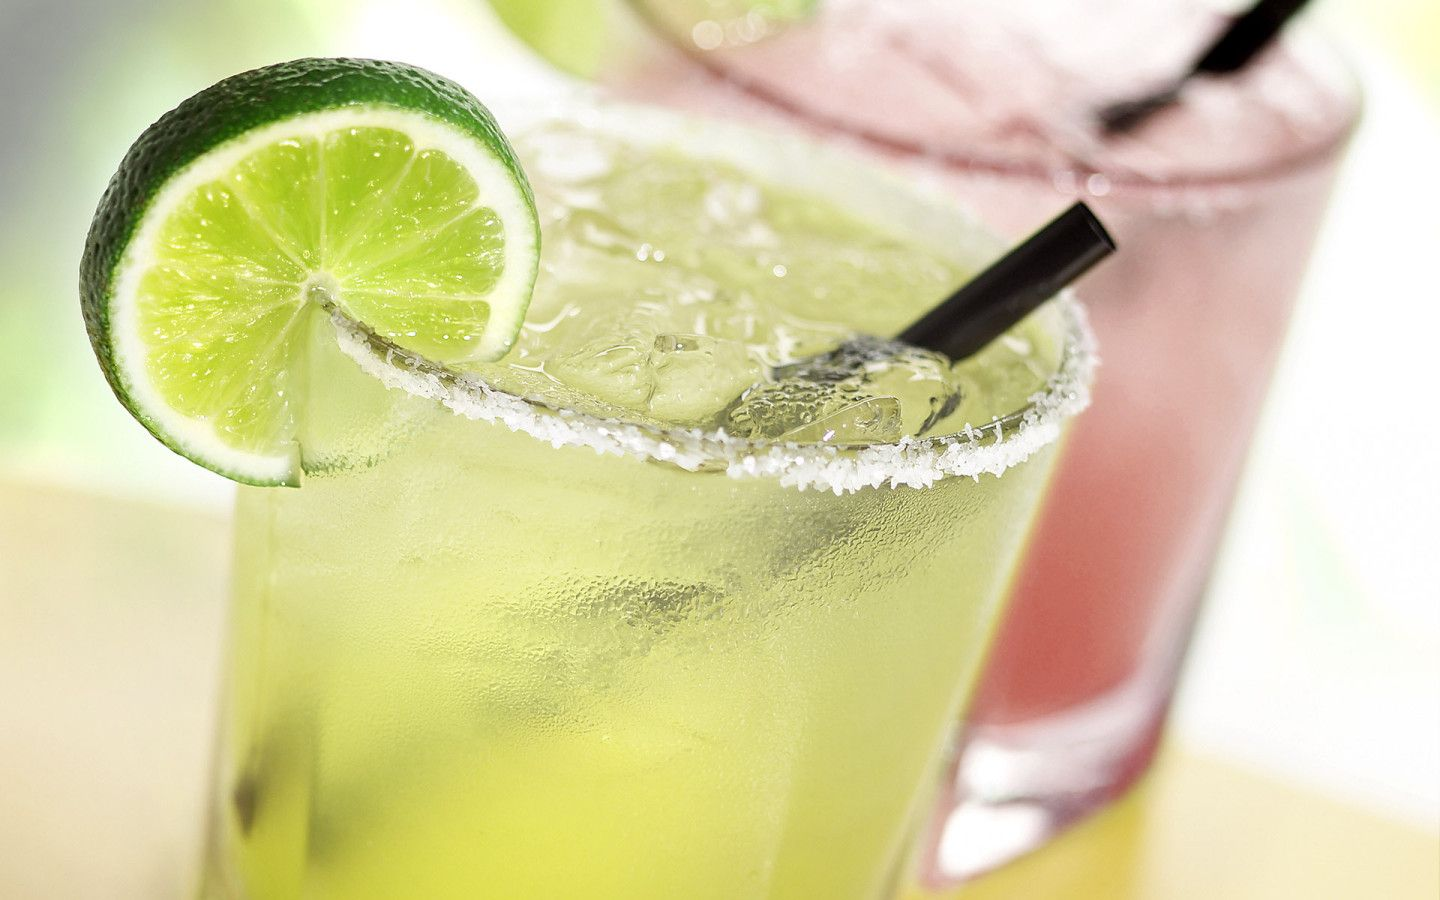 Cool Drinks New Hd Image Nice Hd Wallpapers Drinks Pinterest